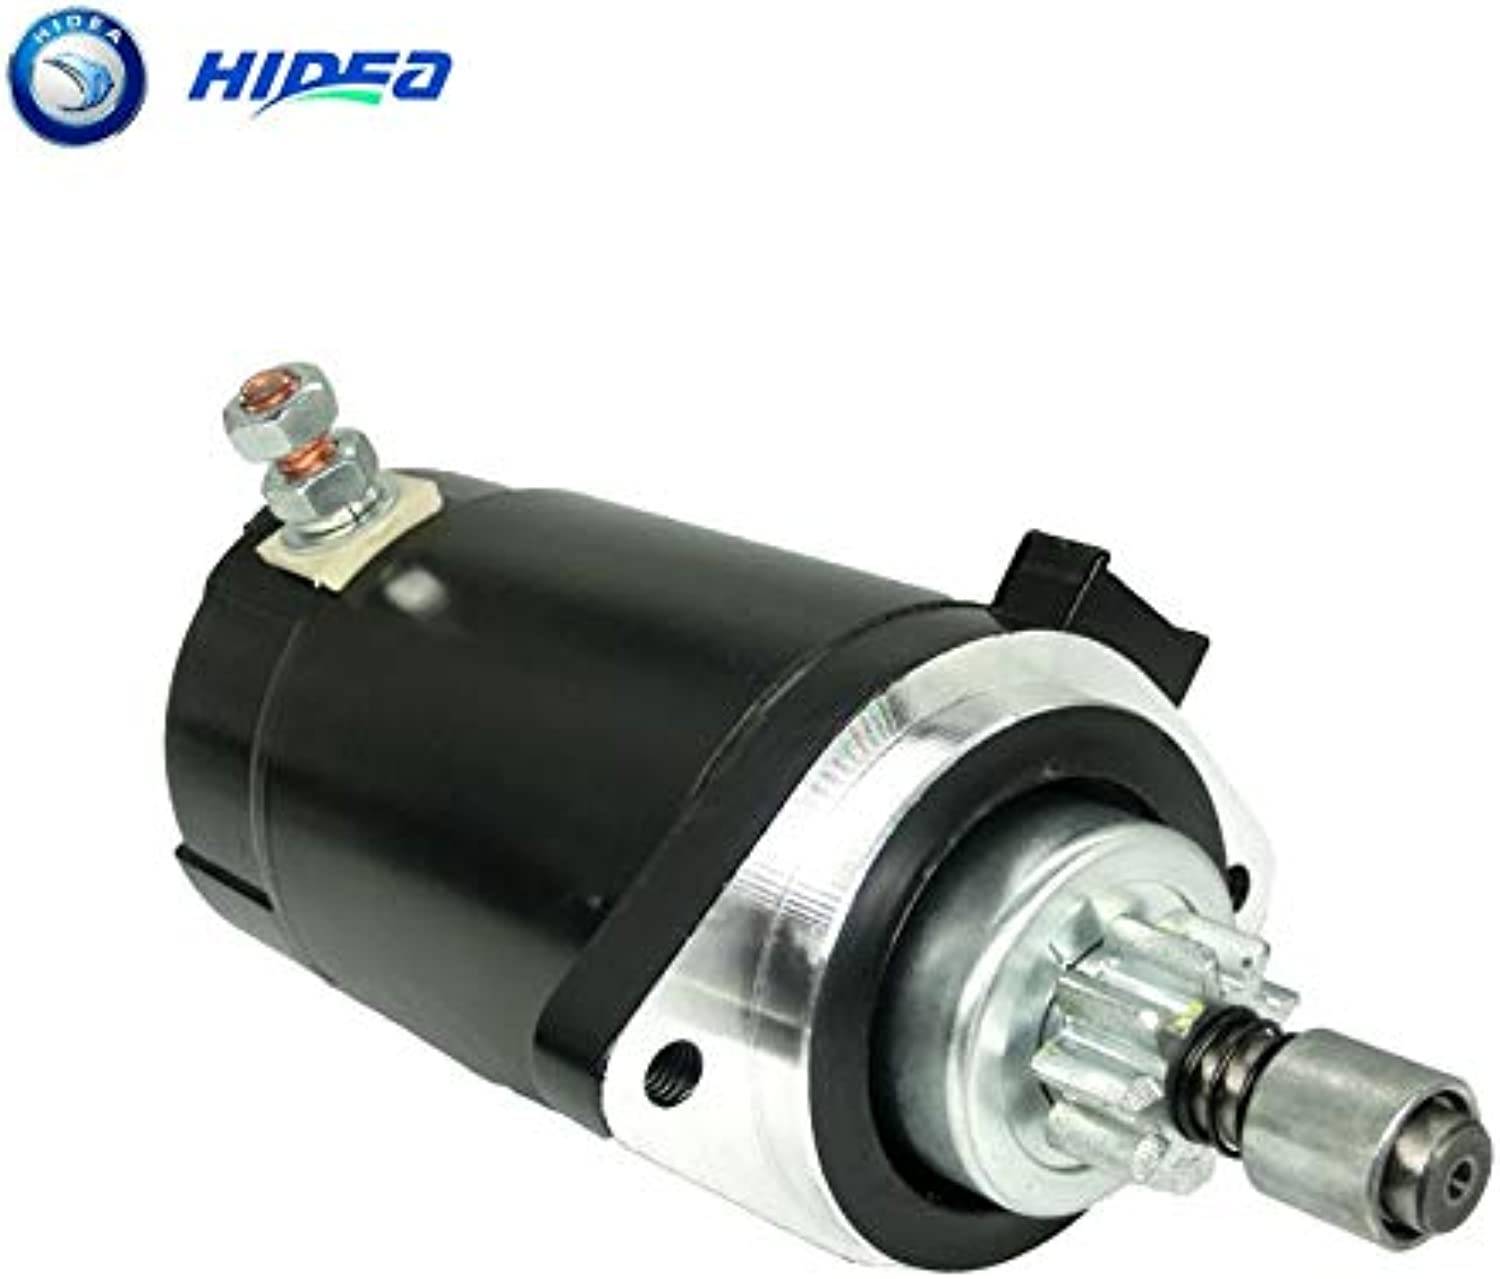 Valves & Parts Zereff Start Motor for YMH 115HP 115ETL 19841990 Outboard Motor 6E58180010 Boat